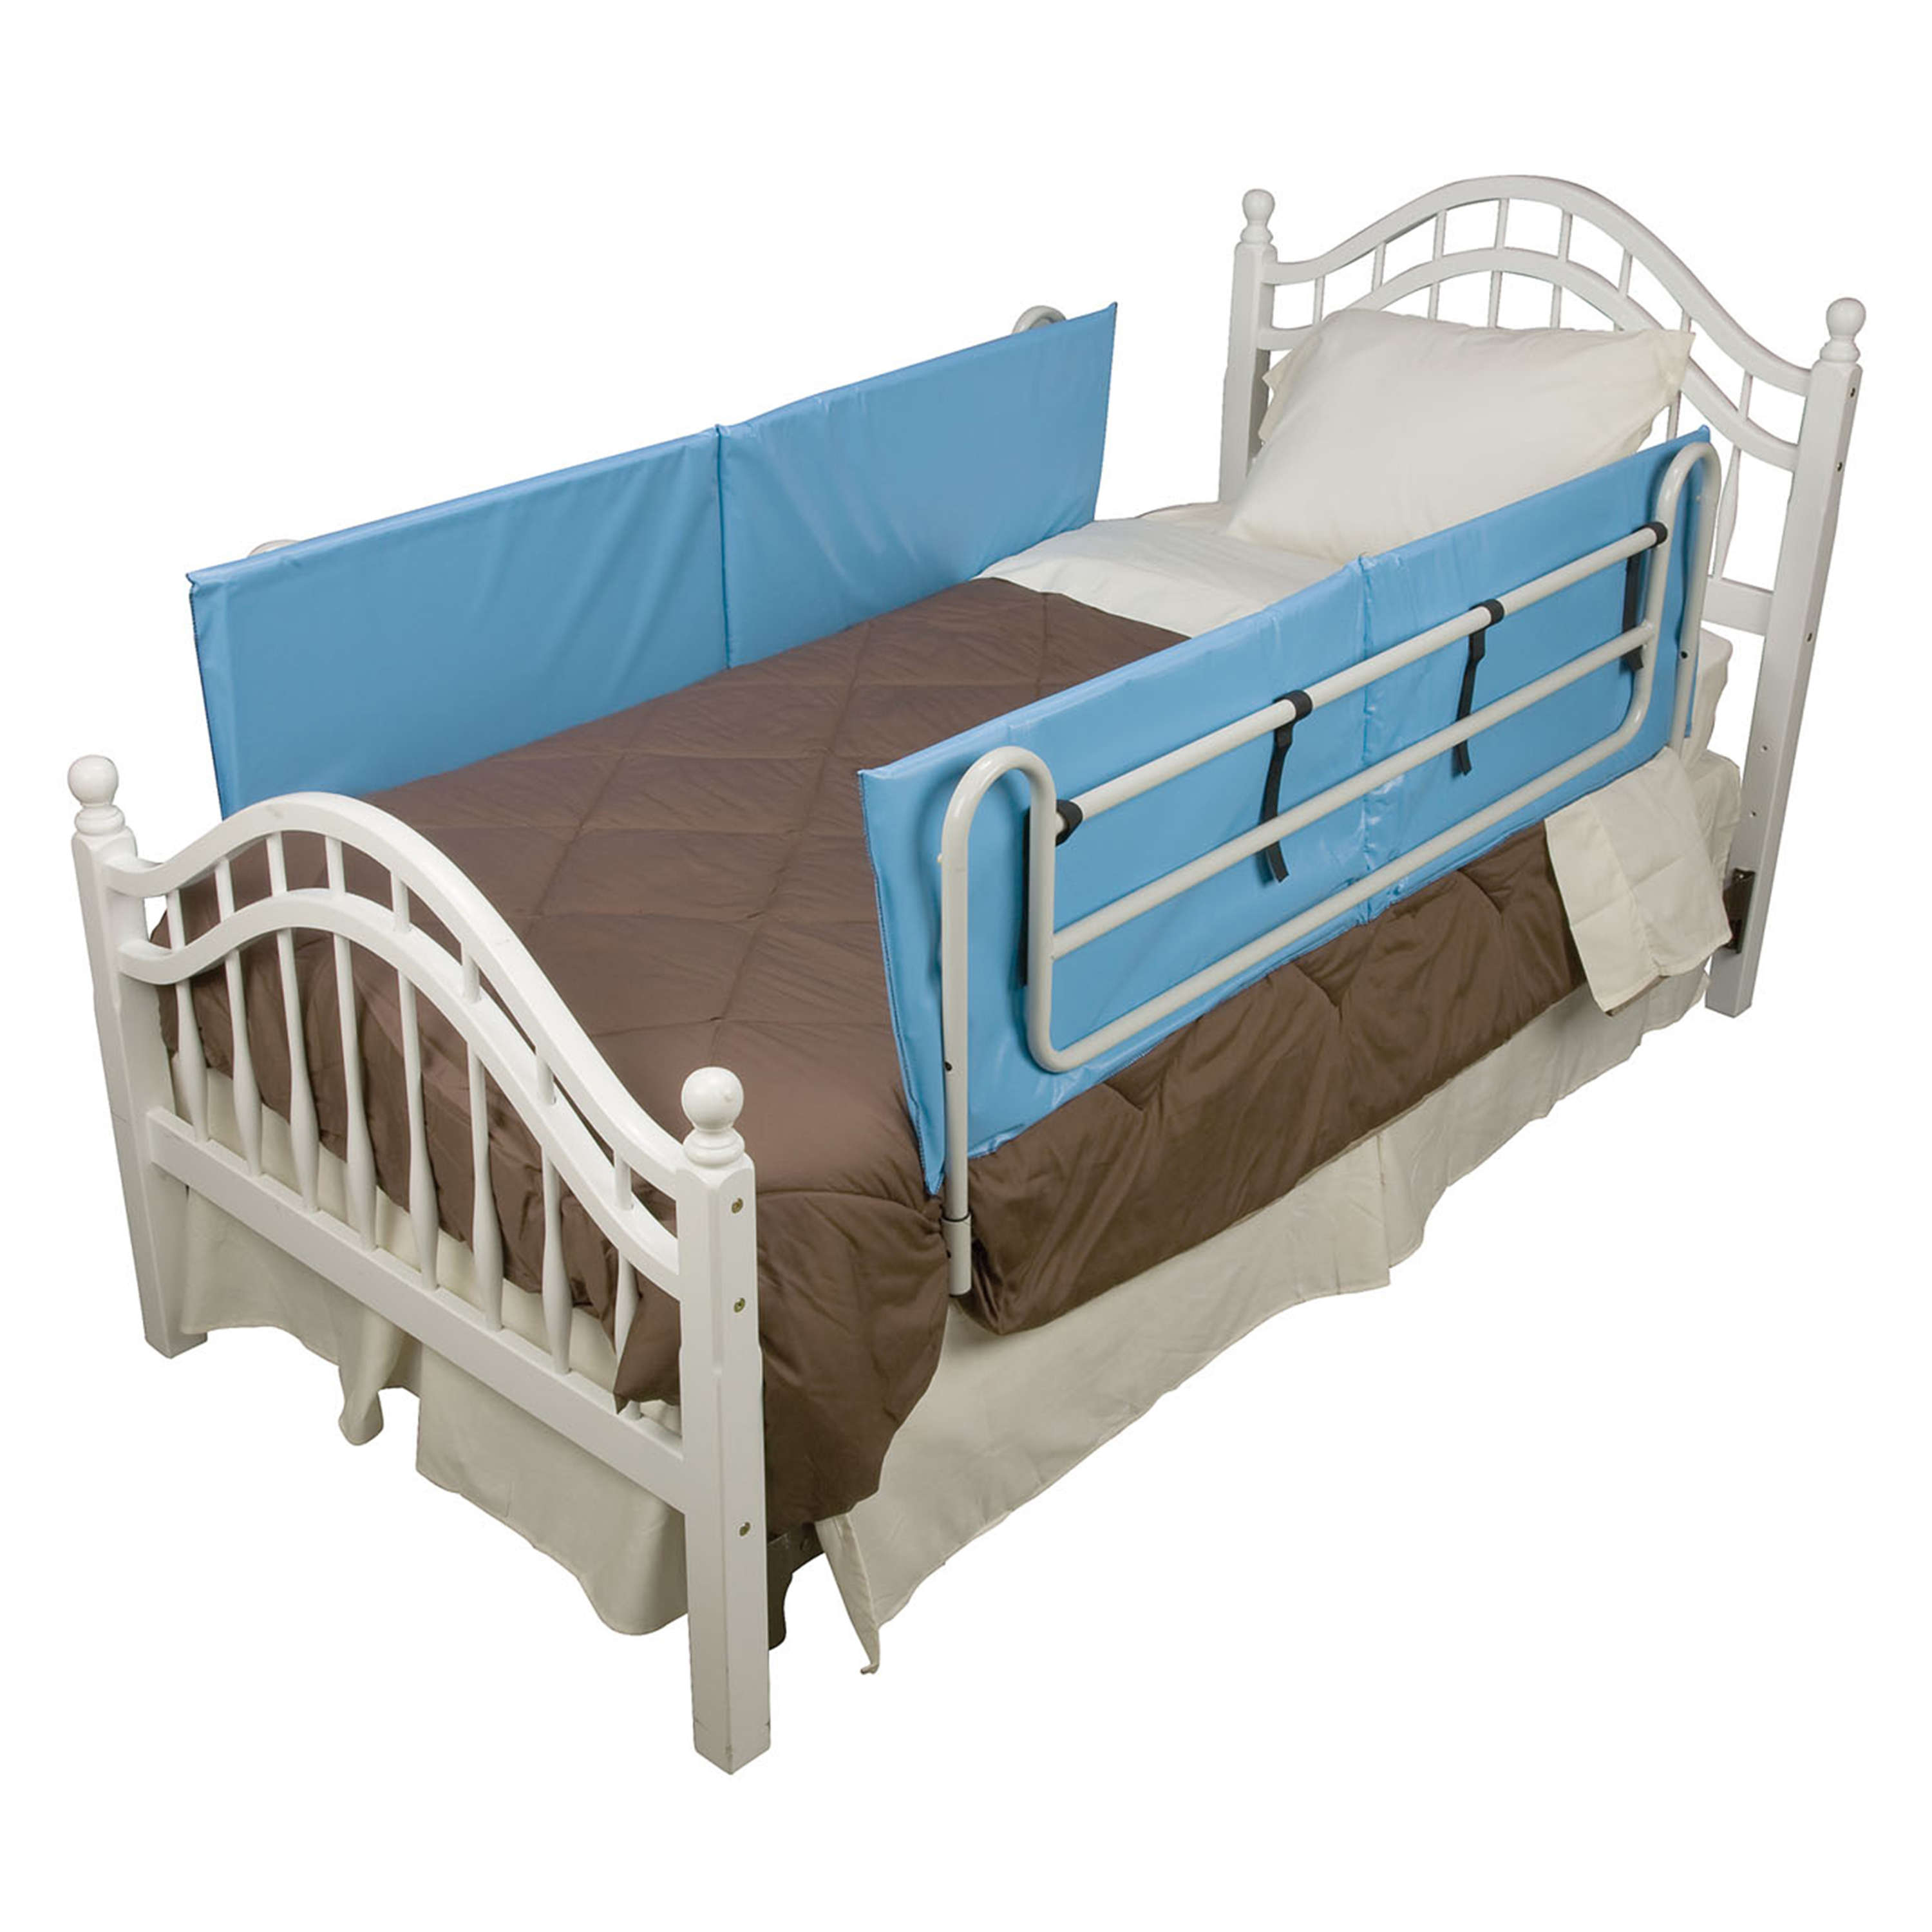 DMI Vinyl Bed Rail Cushions Bed Bumpers Pads, Non-Allergenic Cover, 60 x 15 x 0.5 inches, 1 Pair, Blue